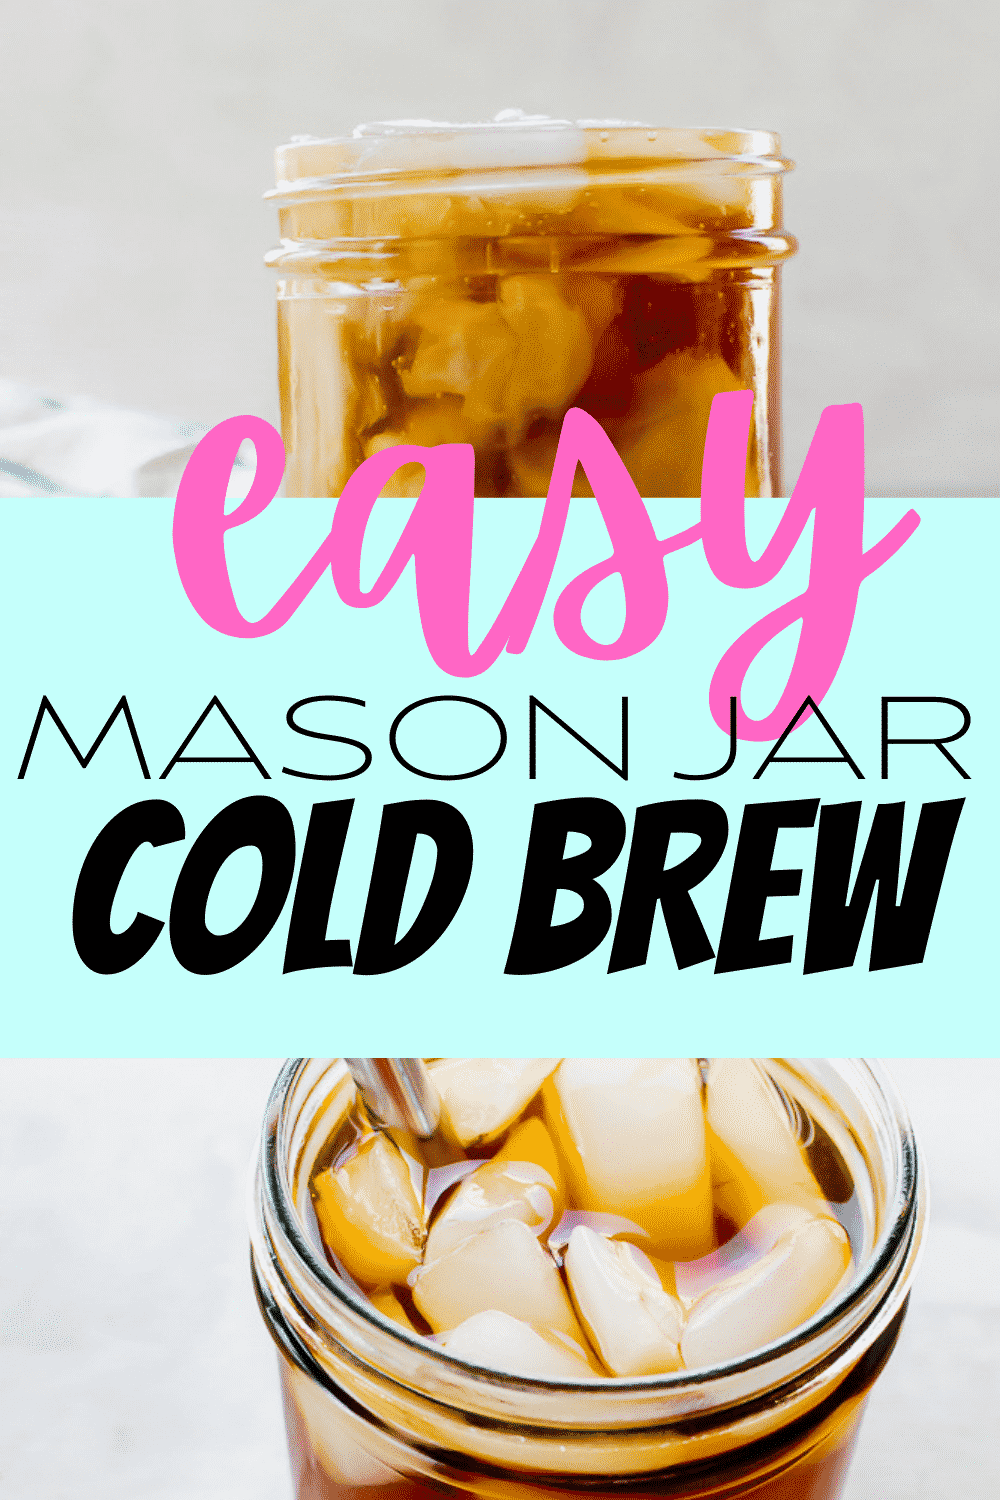 Mason Jar Cold Brew is a quick and easy way to make homemade Cold Brew Concentrate. No need to buy expensive cold brew, when you can make it at home. #masonjarboldbrew #masonjar #coldbrew